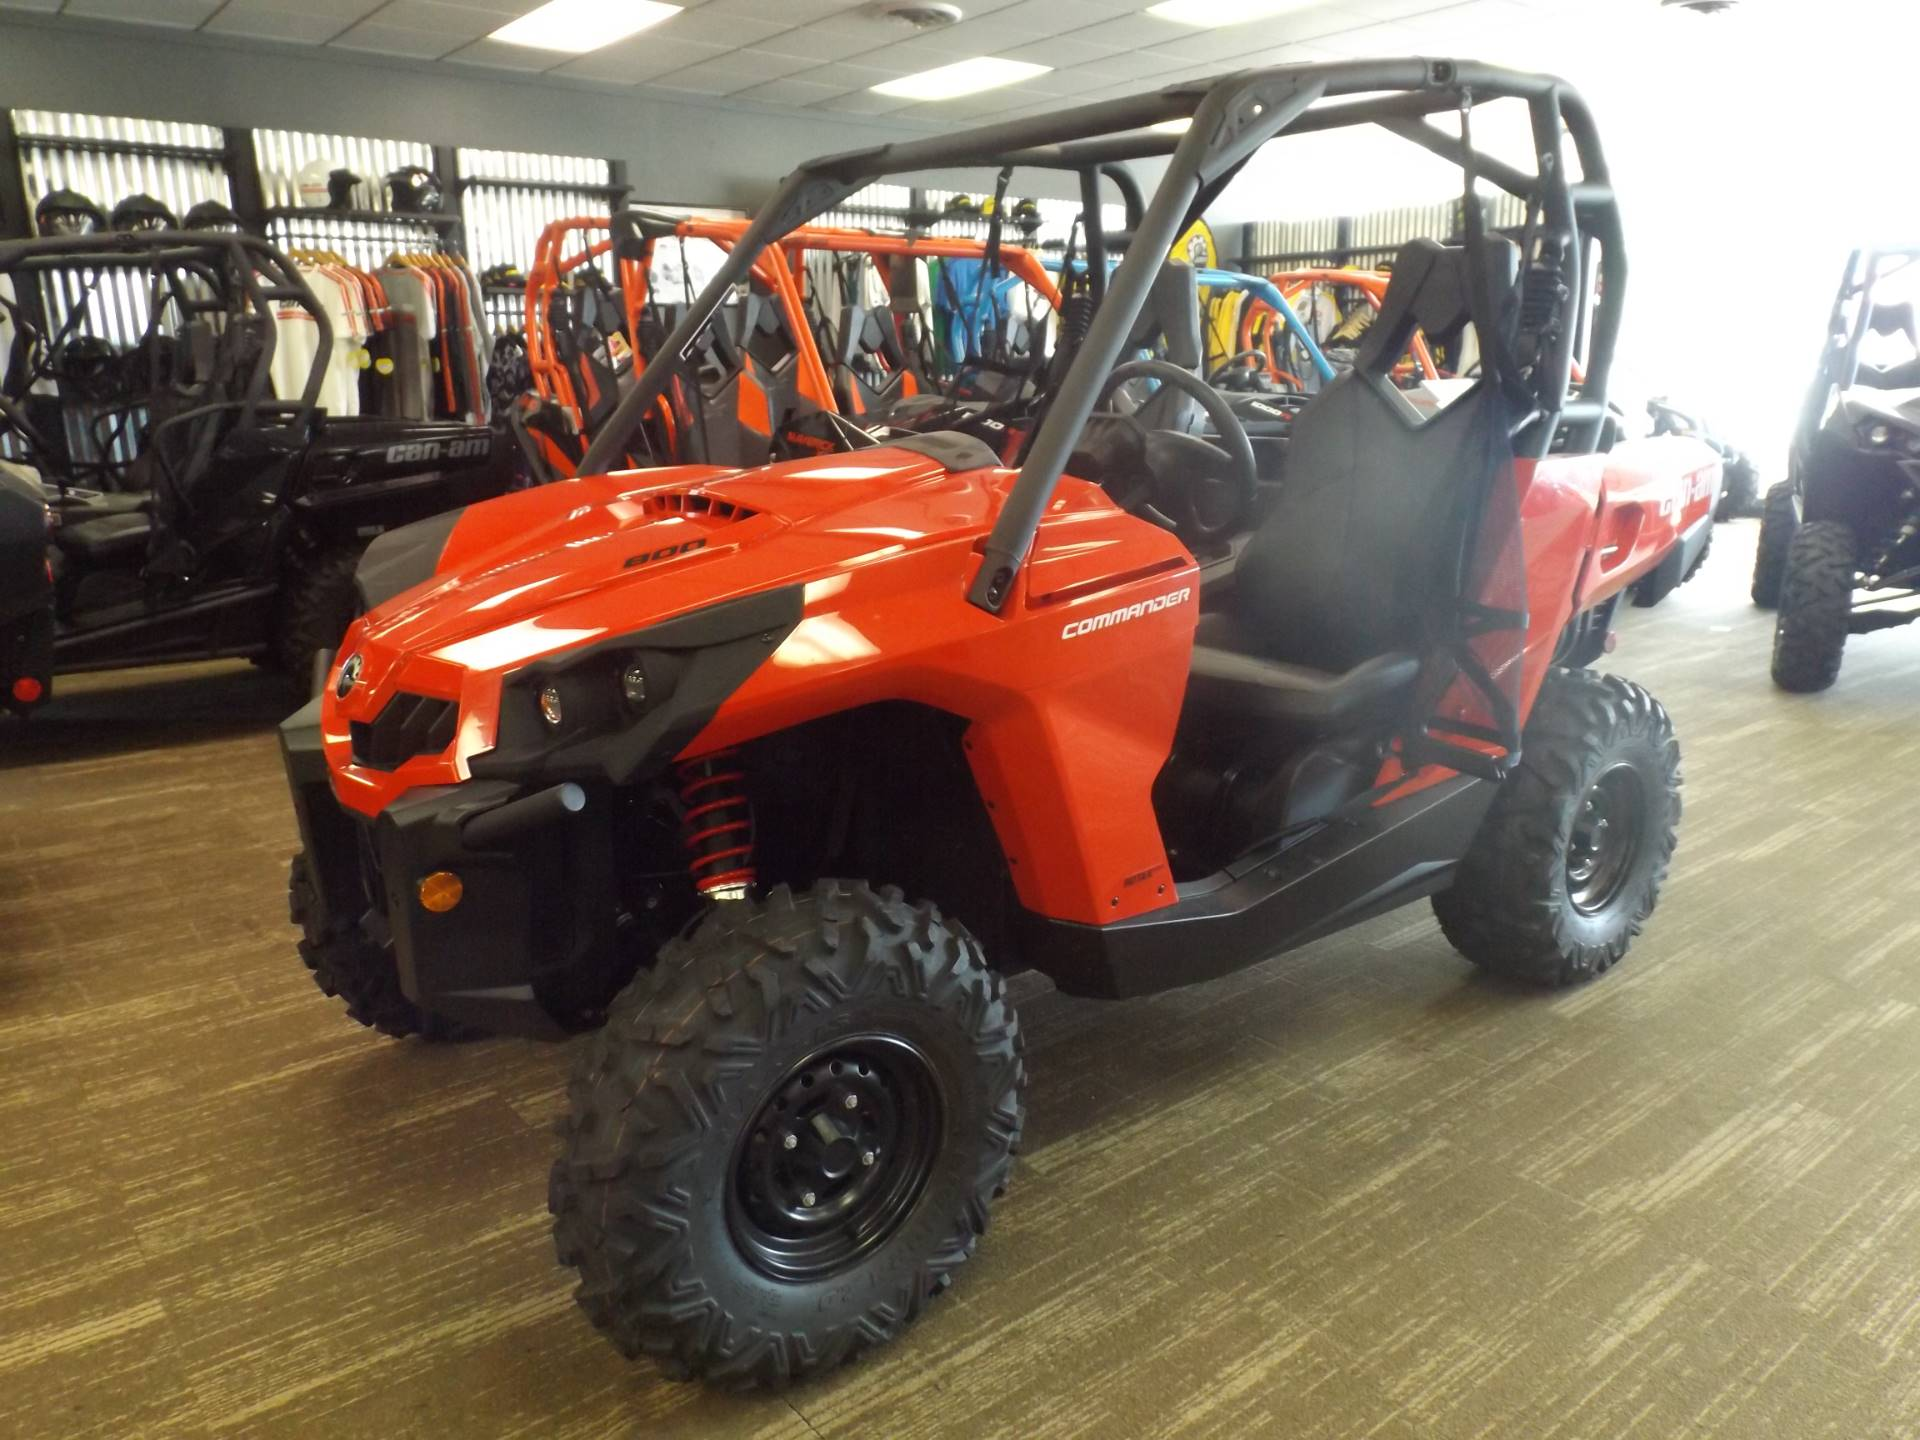 2017 Can Am Commander 800r Utility Vehicles Huntington West Virginia P0505cab